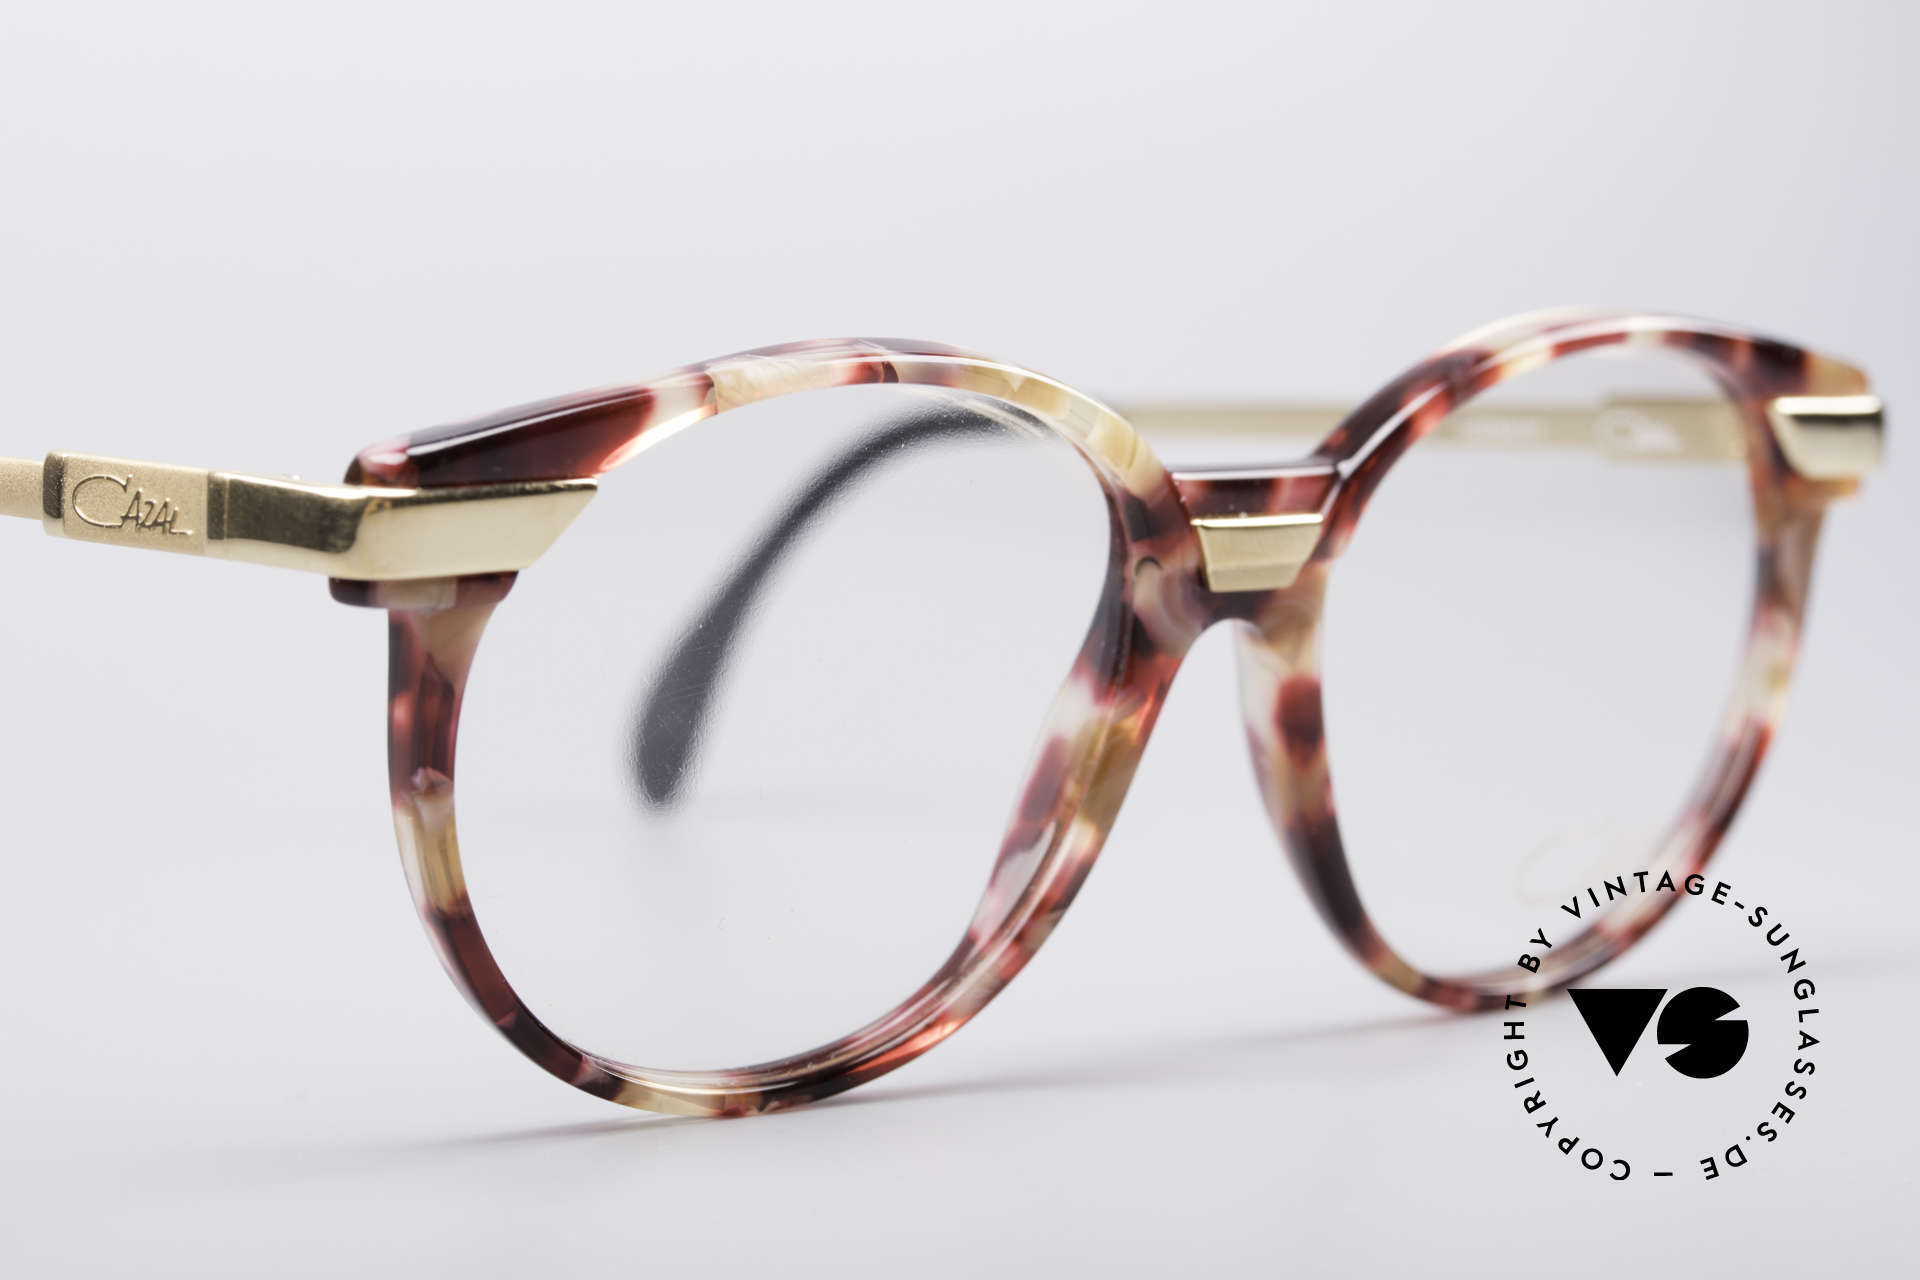 Cazal 338 Round 90's Vintage Frame, NO retro eyeglasses, but an app. 25 years old original, Made for Men and Women